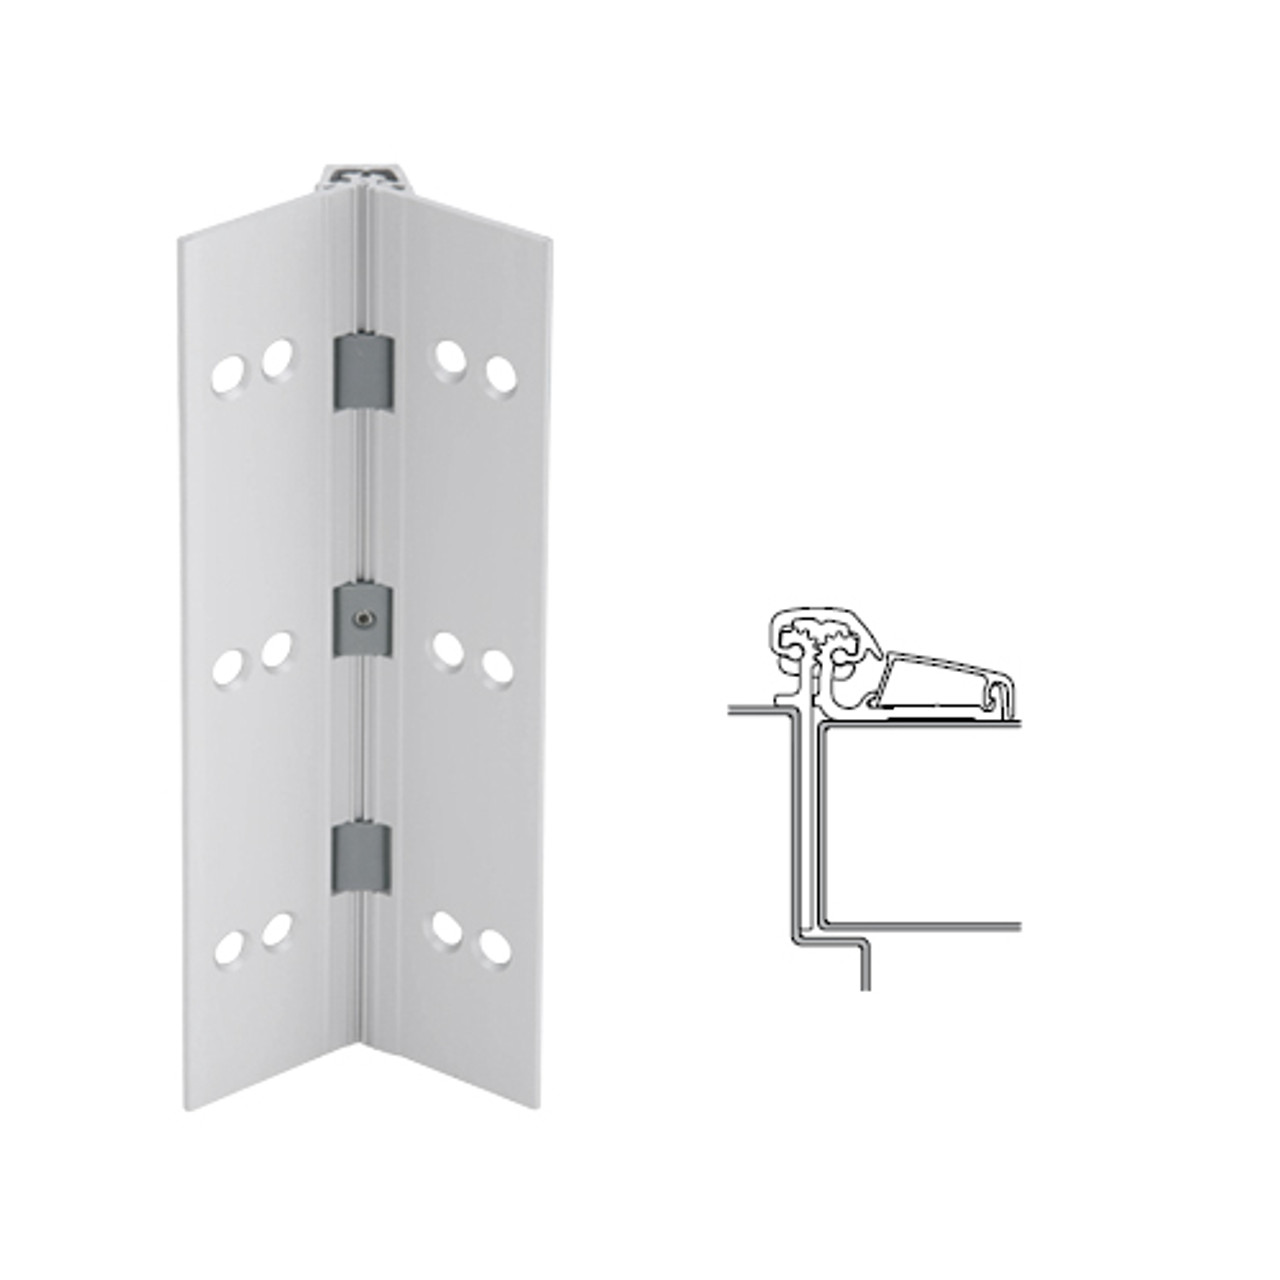 054XY-US28-85-WD IVES Adjustable Half Surface Continuous Geared Hinges with Wood Screws in Satin Aluminum